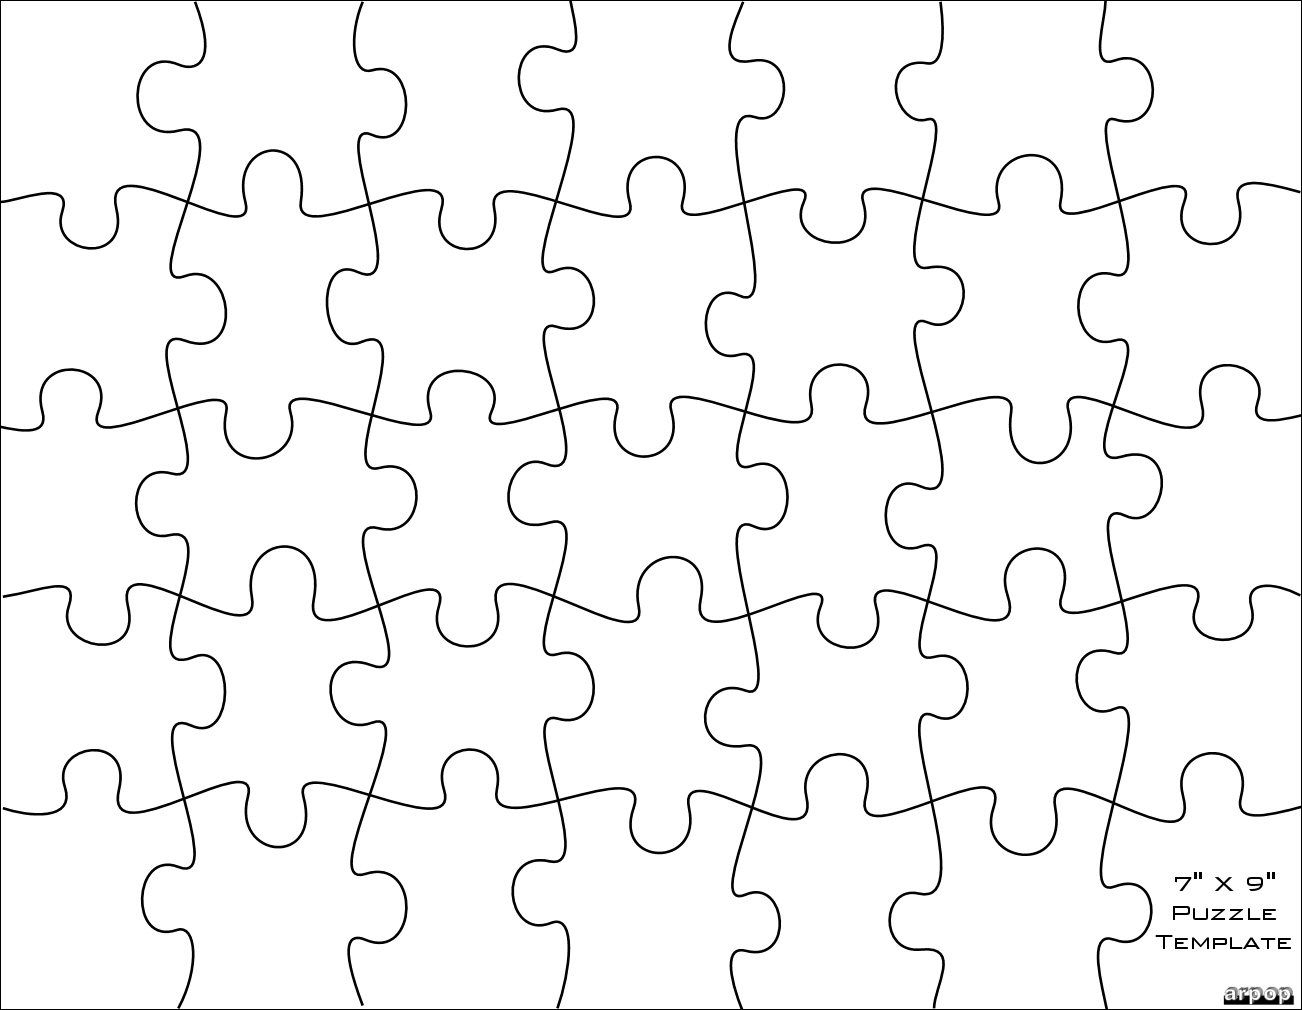 Free Scroll Saw Patternsarpop: Jigsaw Puzzle Templates | School - Printable Puzzle Template Free